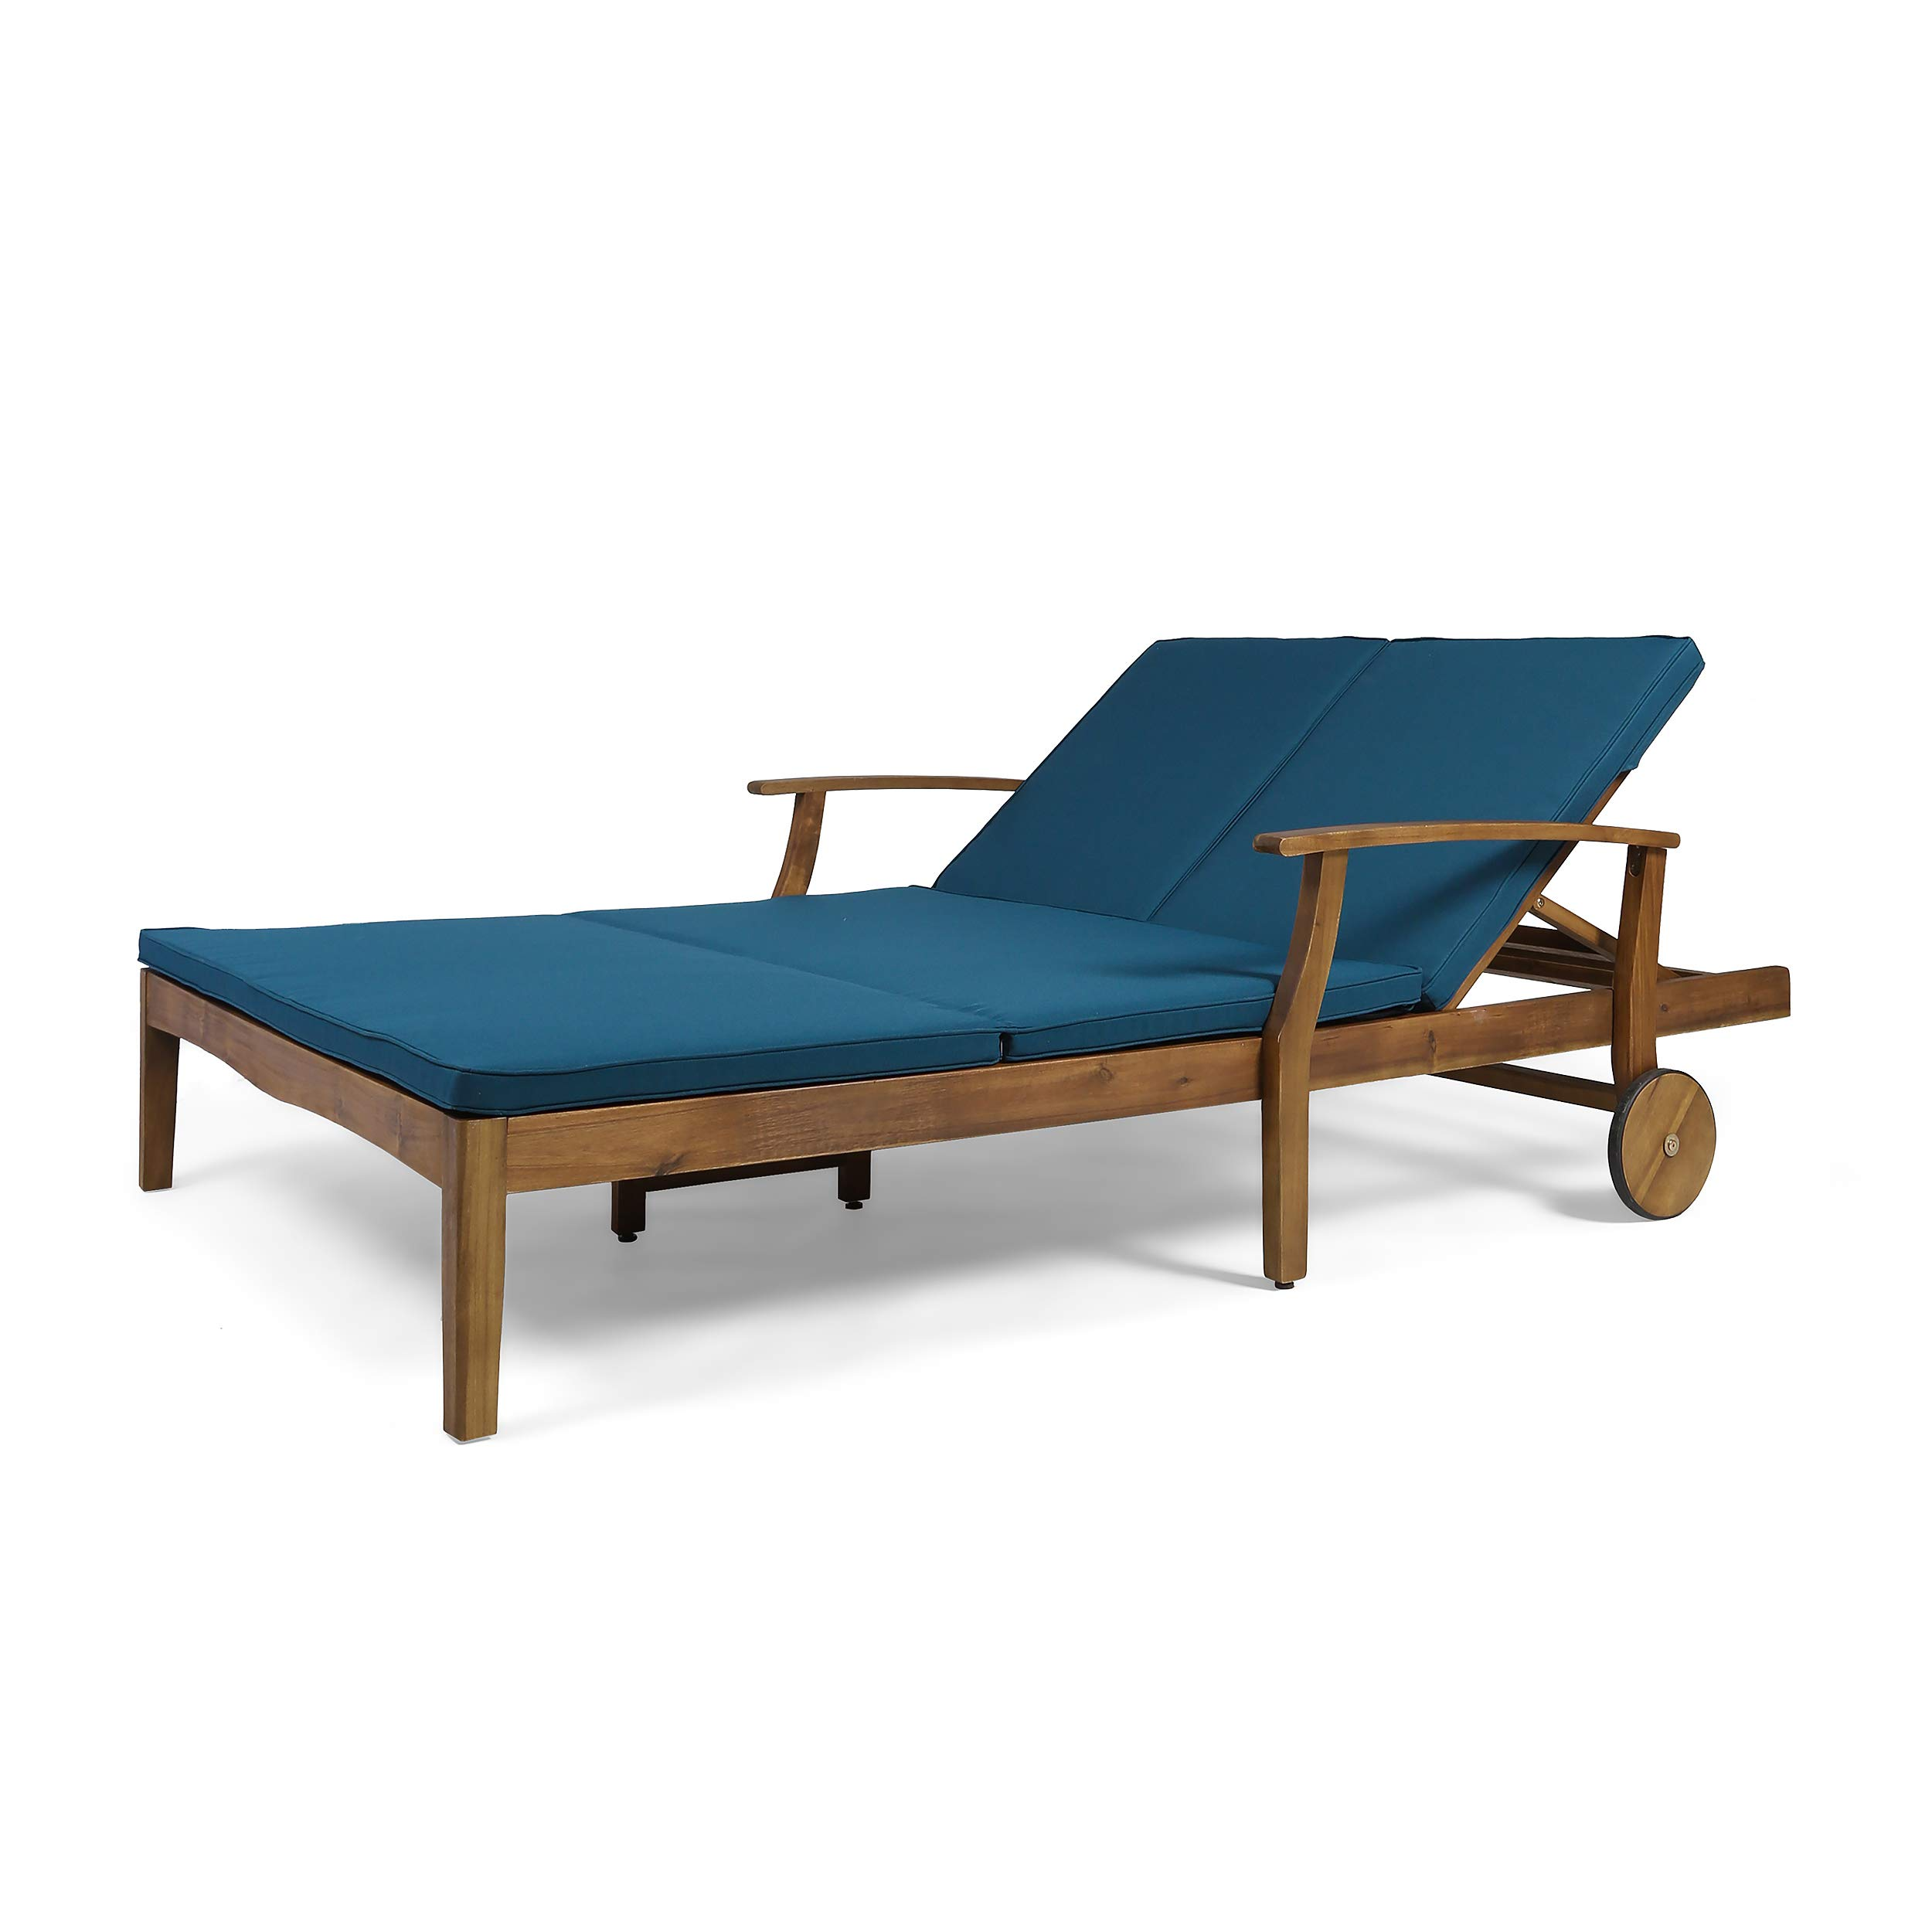 Great Deal Furniture Samantha Double Chaise Lounge for Yard and Patio, Acacia Wood Frame, Teak Finish with Blue Cushions by Great Deal Furniture